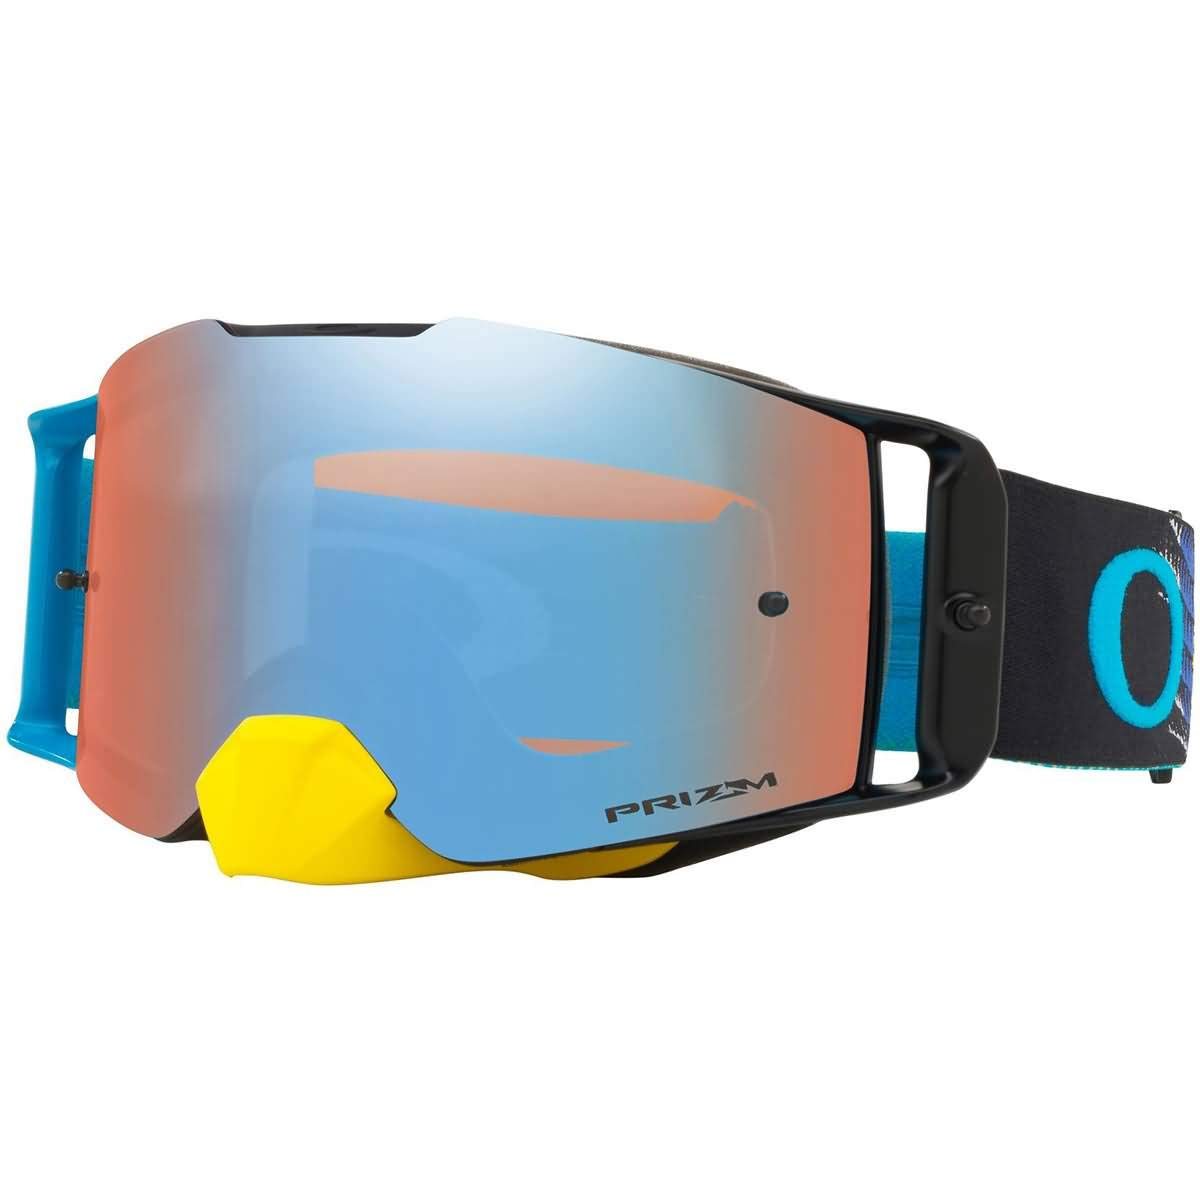 Oakley Front Line MX Adult Off-Road Motorcycle Goggles - Dissolve Yellow Blue/Prizm Sapphire